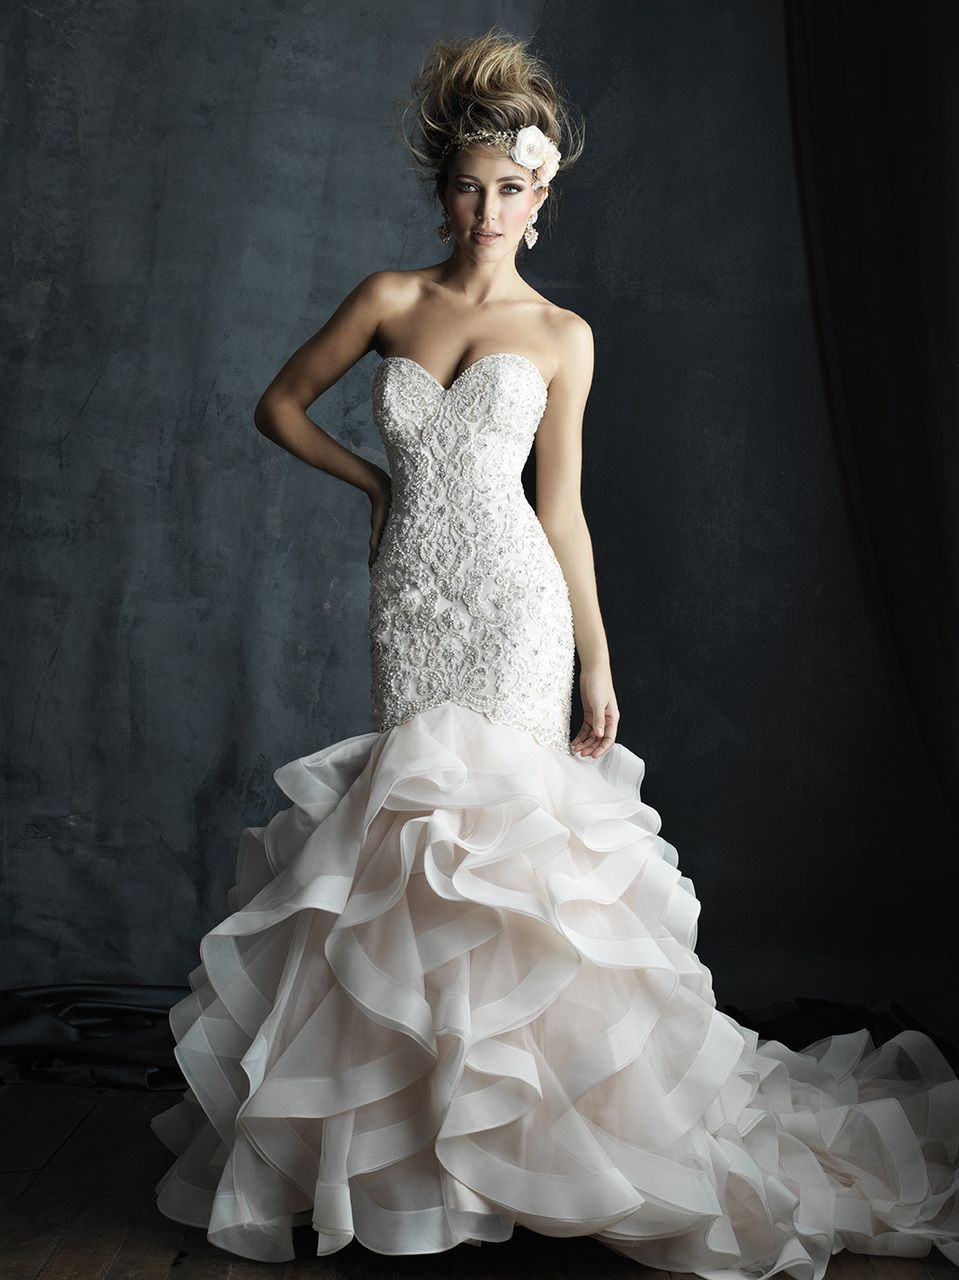 Bridals by Lori - Allure Couture Bridals 0131490, In store (http ...